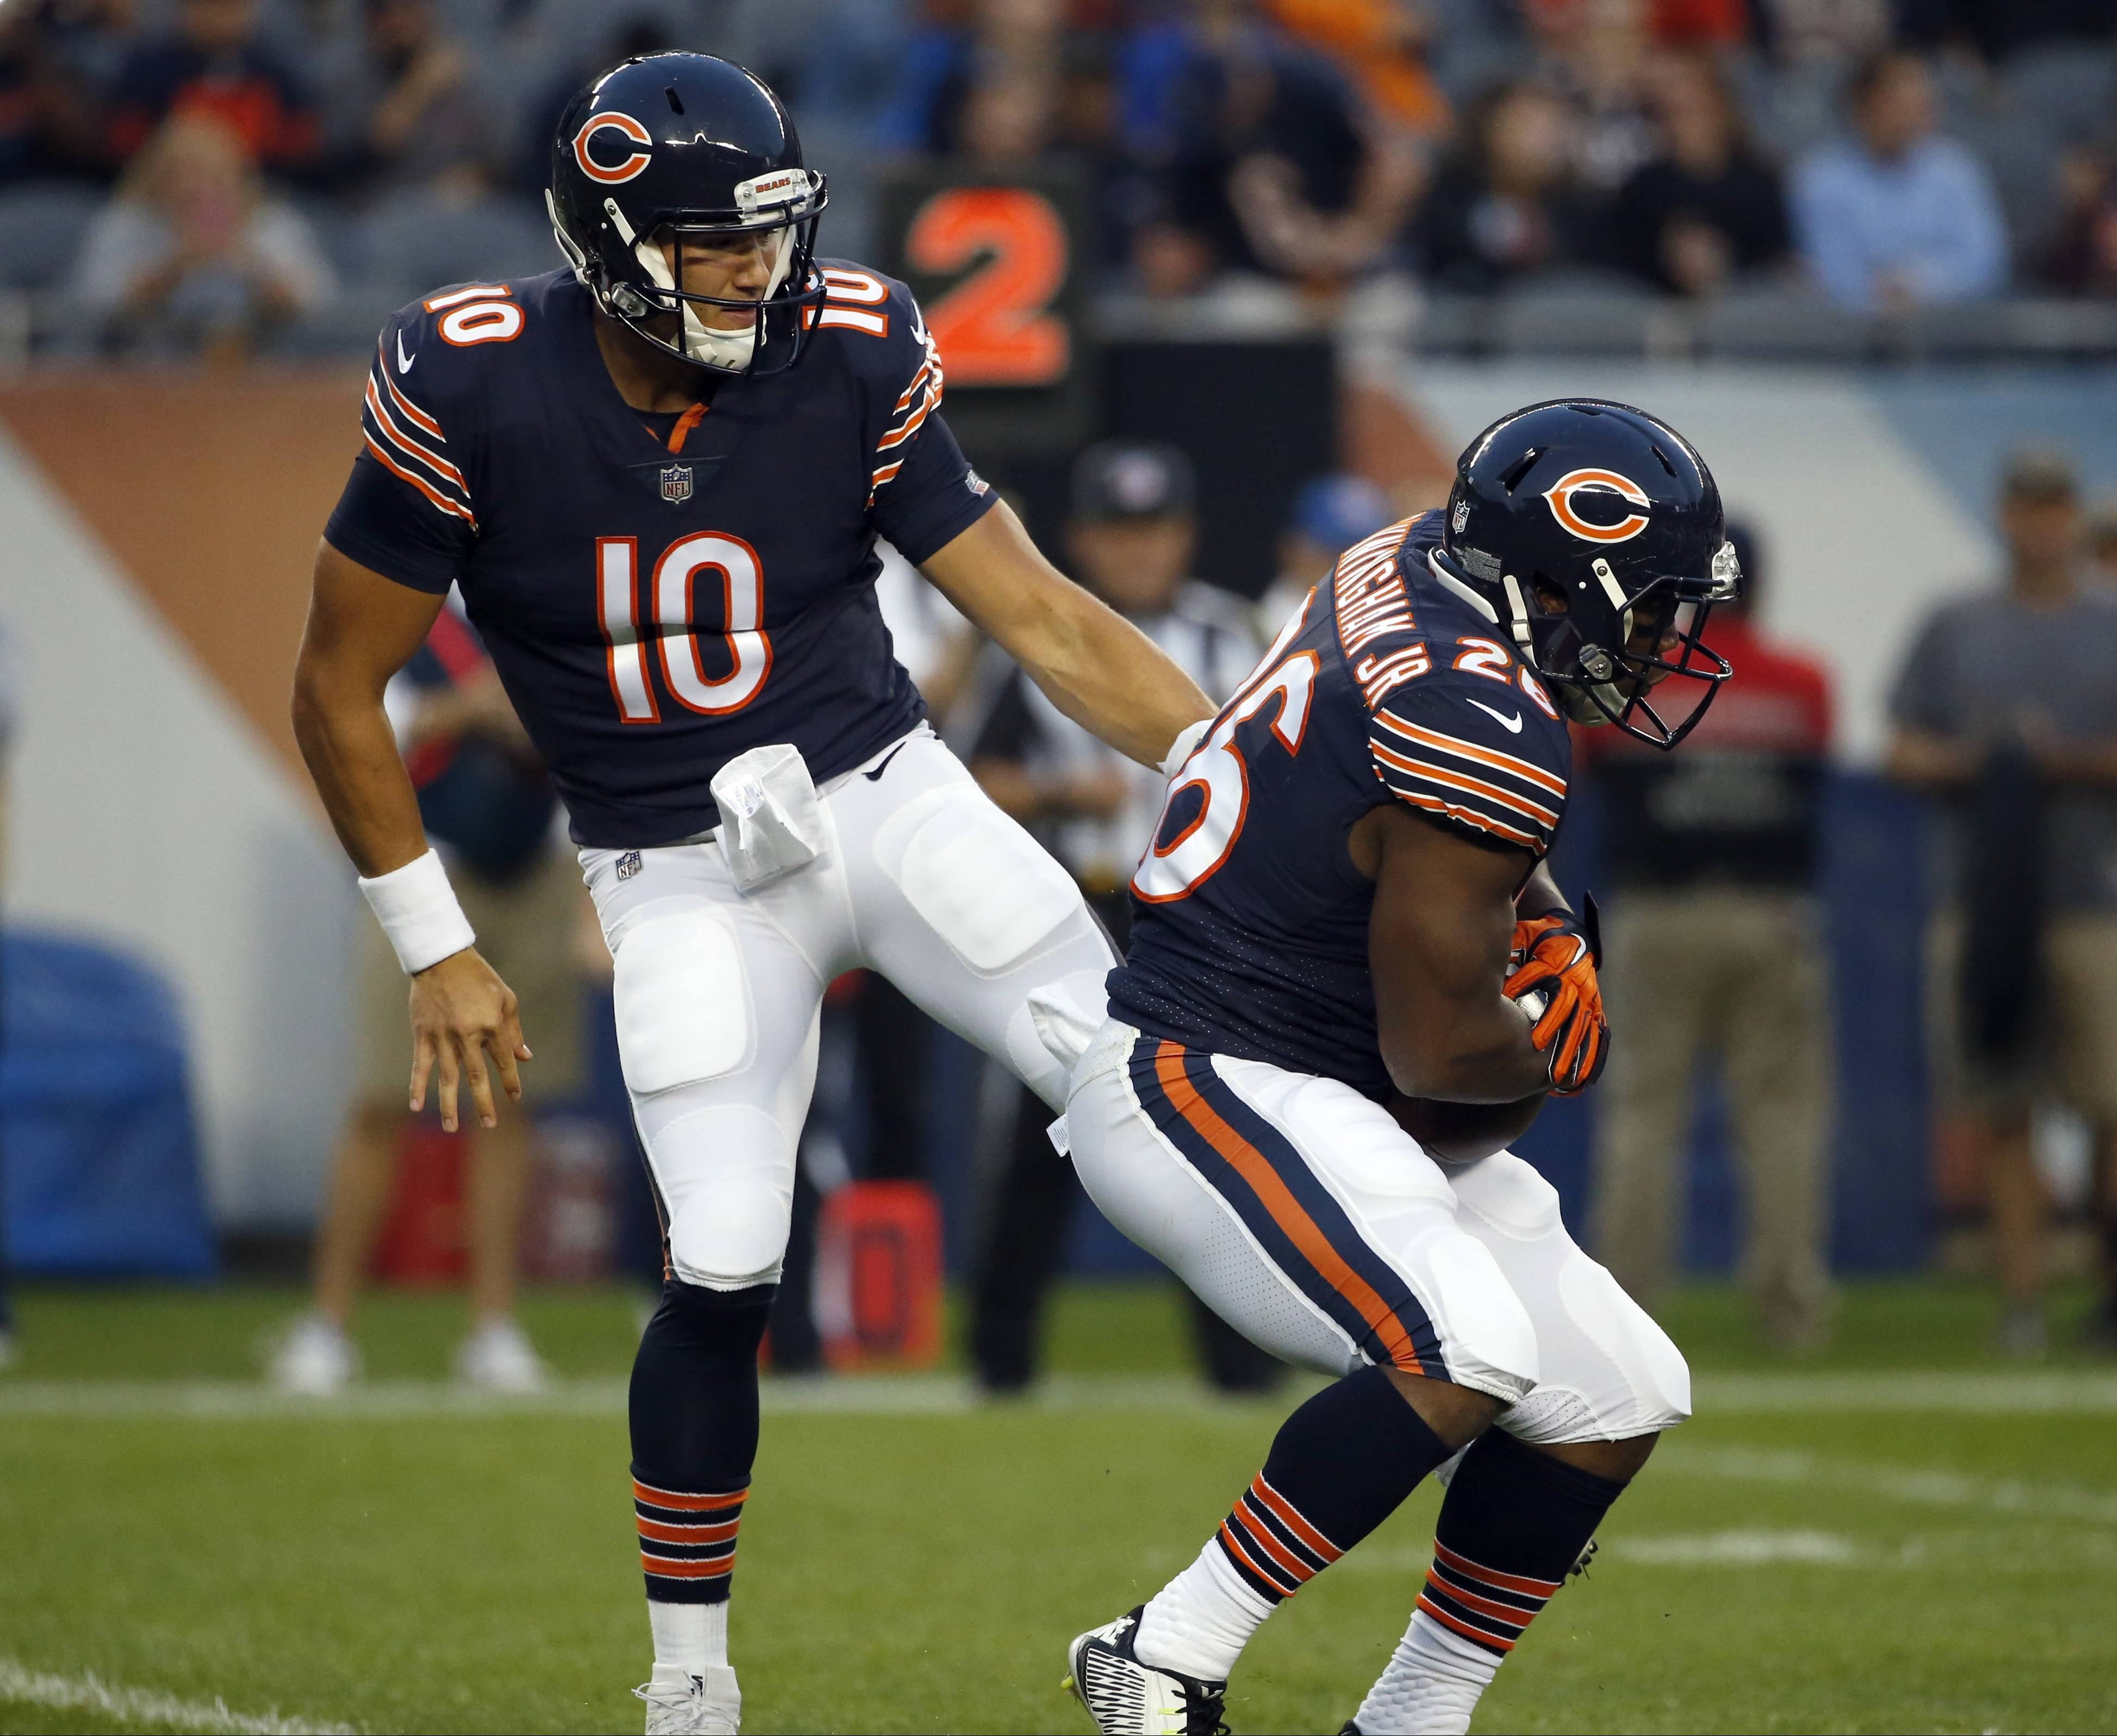 Chicago Bears quarterback Mitchell Trubisky (10) hands off the ball to running back Benny Cunningham (26) during the first half of an NFL football game against the Cleveland Browns, Thursday, Aug. 31, 2017, in Chicago.